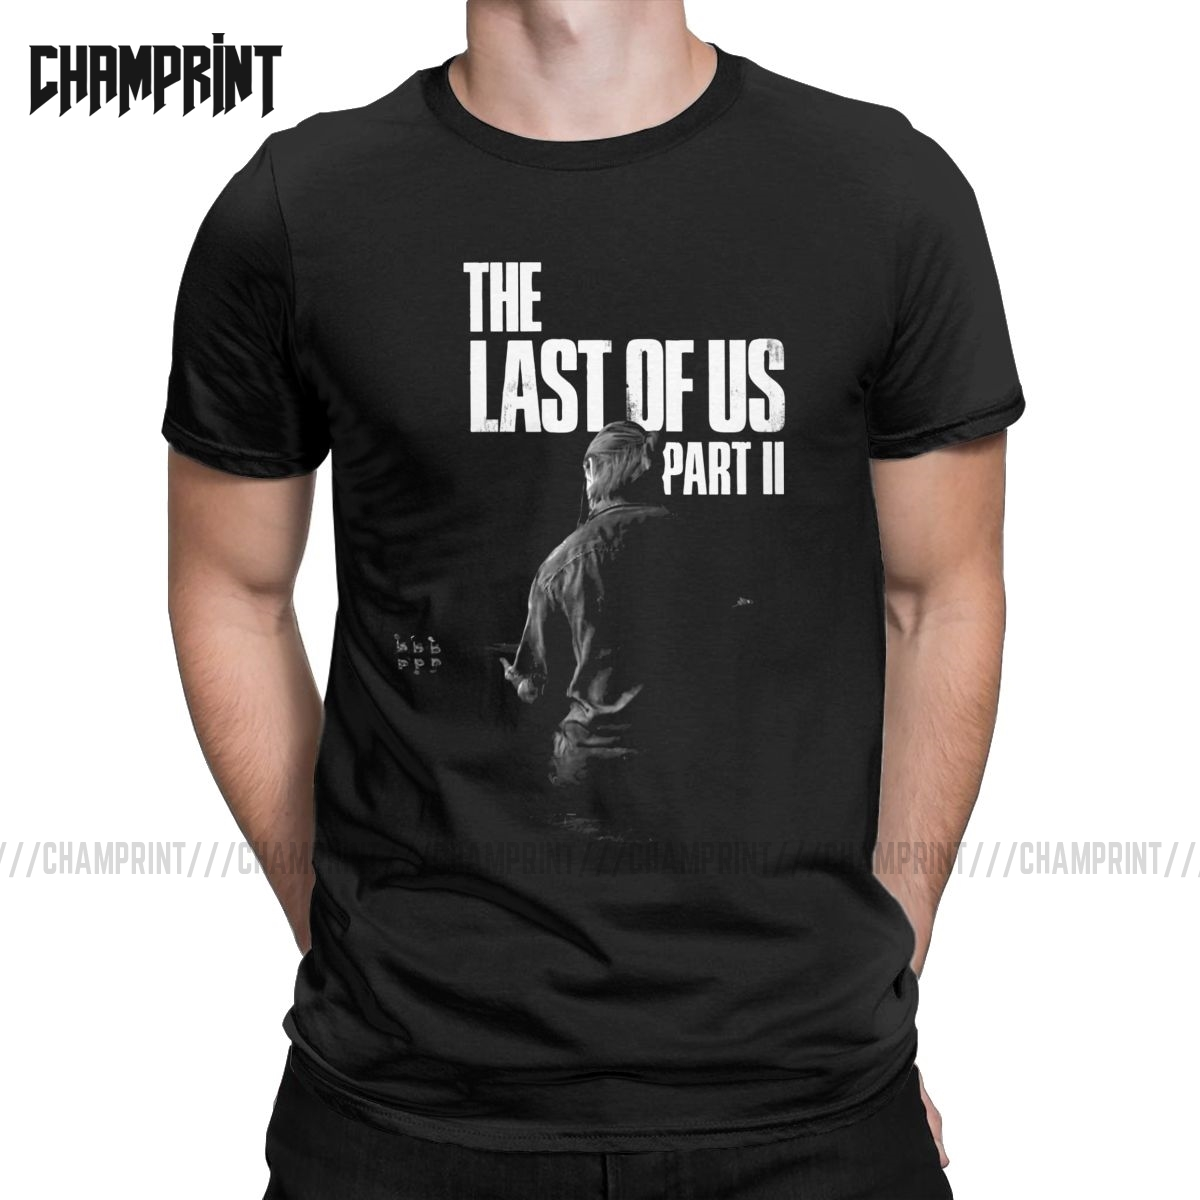 The Last Of Us Winter Song T Shirts Men Pure Cotton T-Shirt Ellie Fireflies Joel Tlou Video Game Tees Short Sleeve Plus Size image